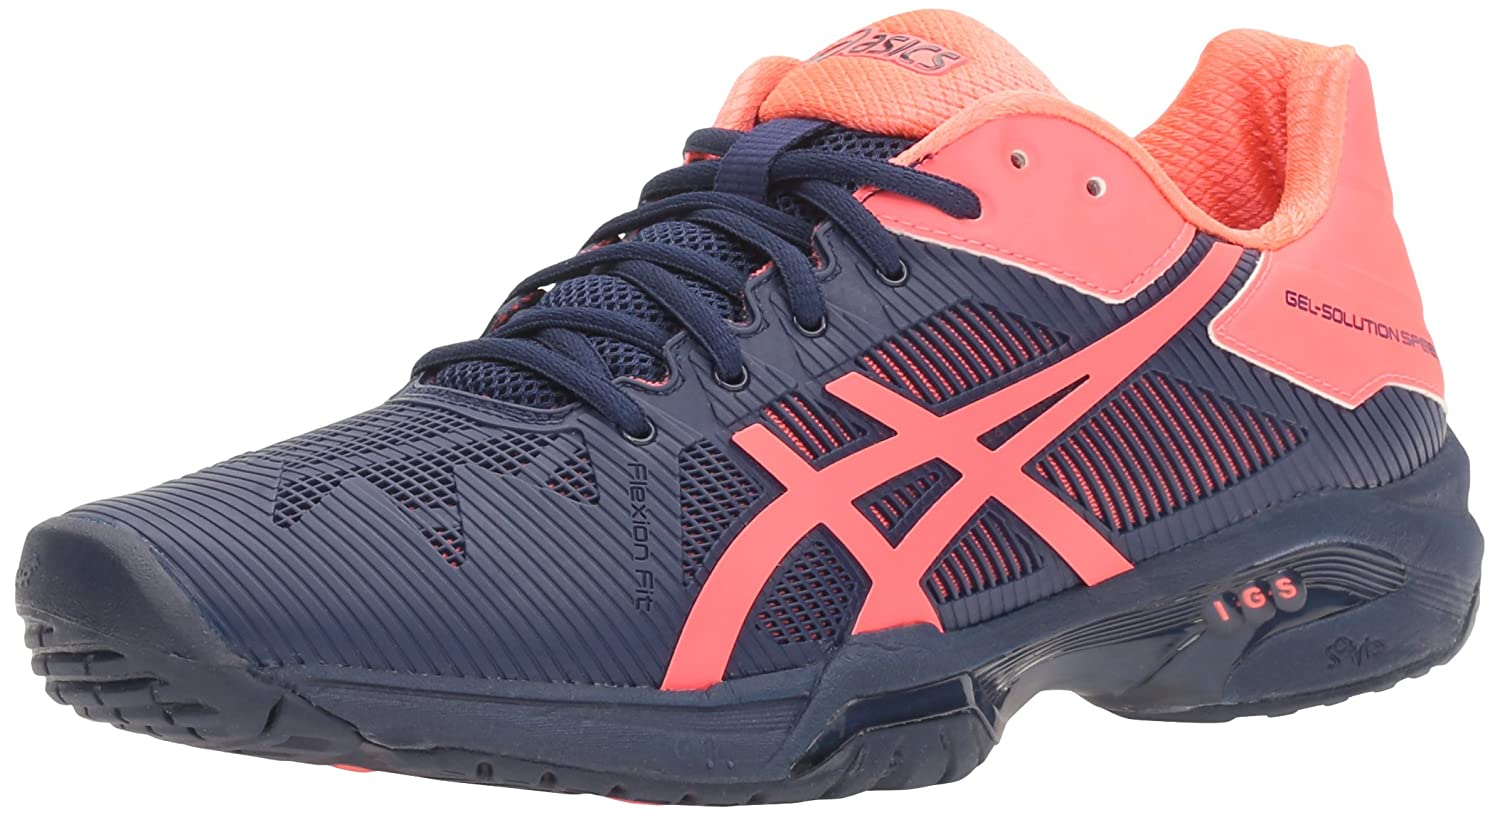 ASICS Women's Gel-Solution Speed 3 Tennis Shoe B01H319LYE 6.5 B(M) US|Indigo Blue/Diva Pink